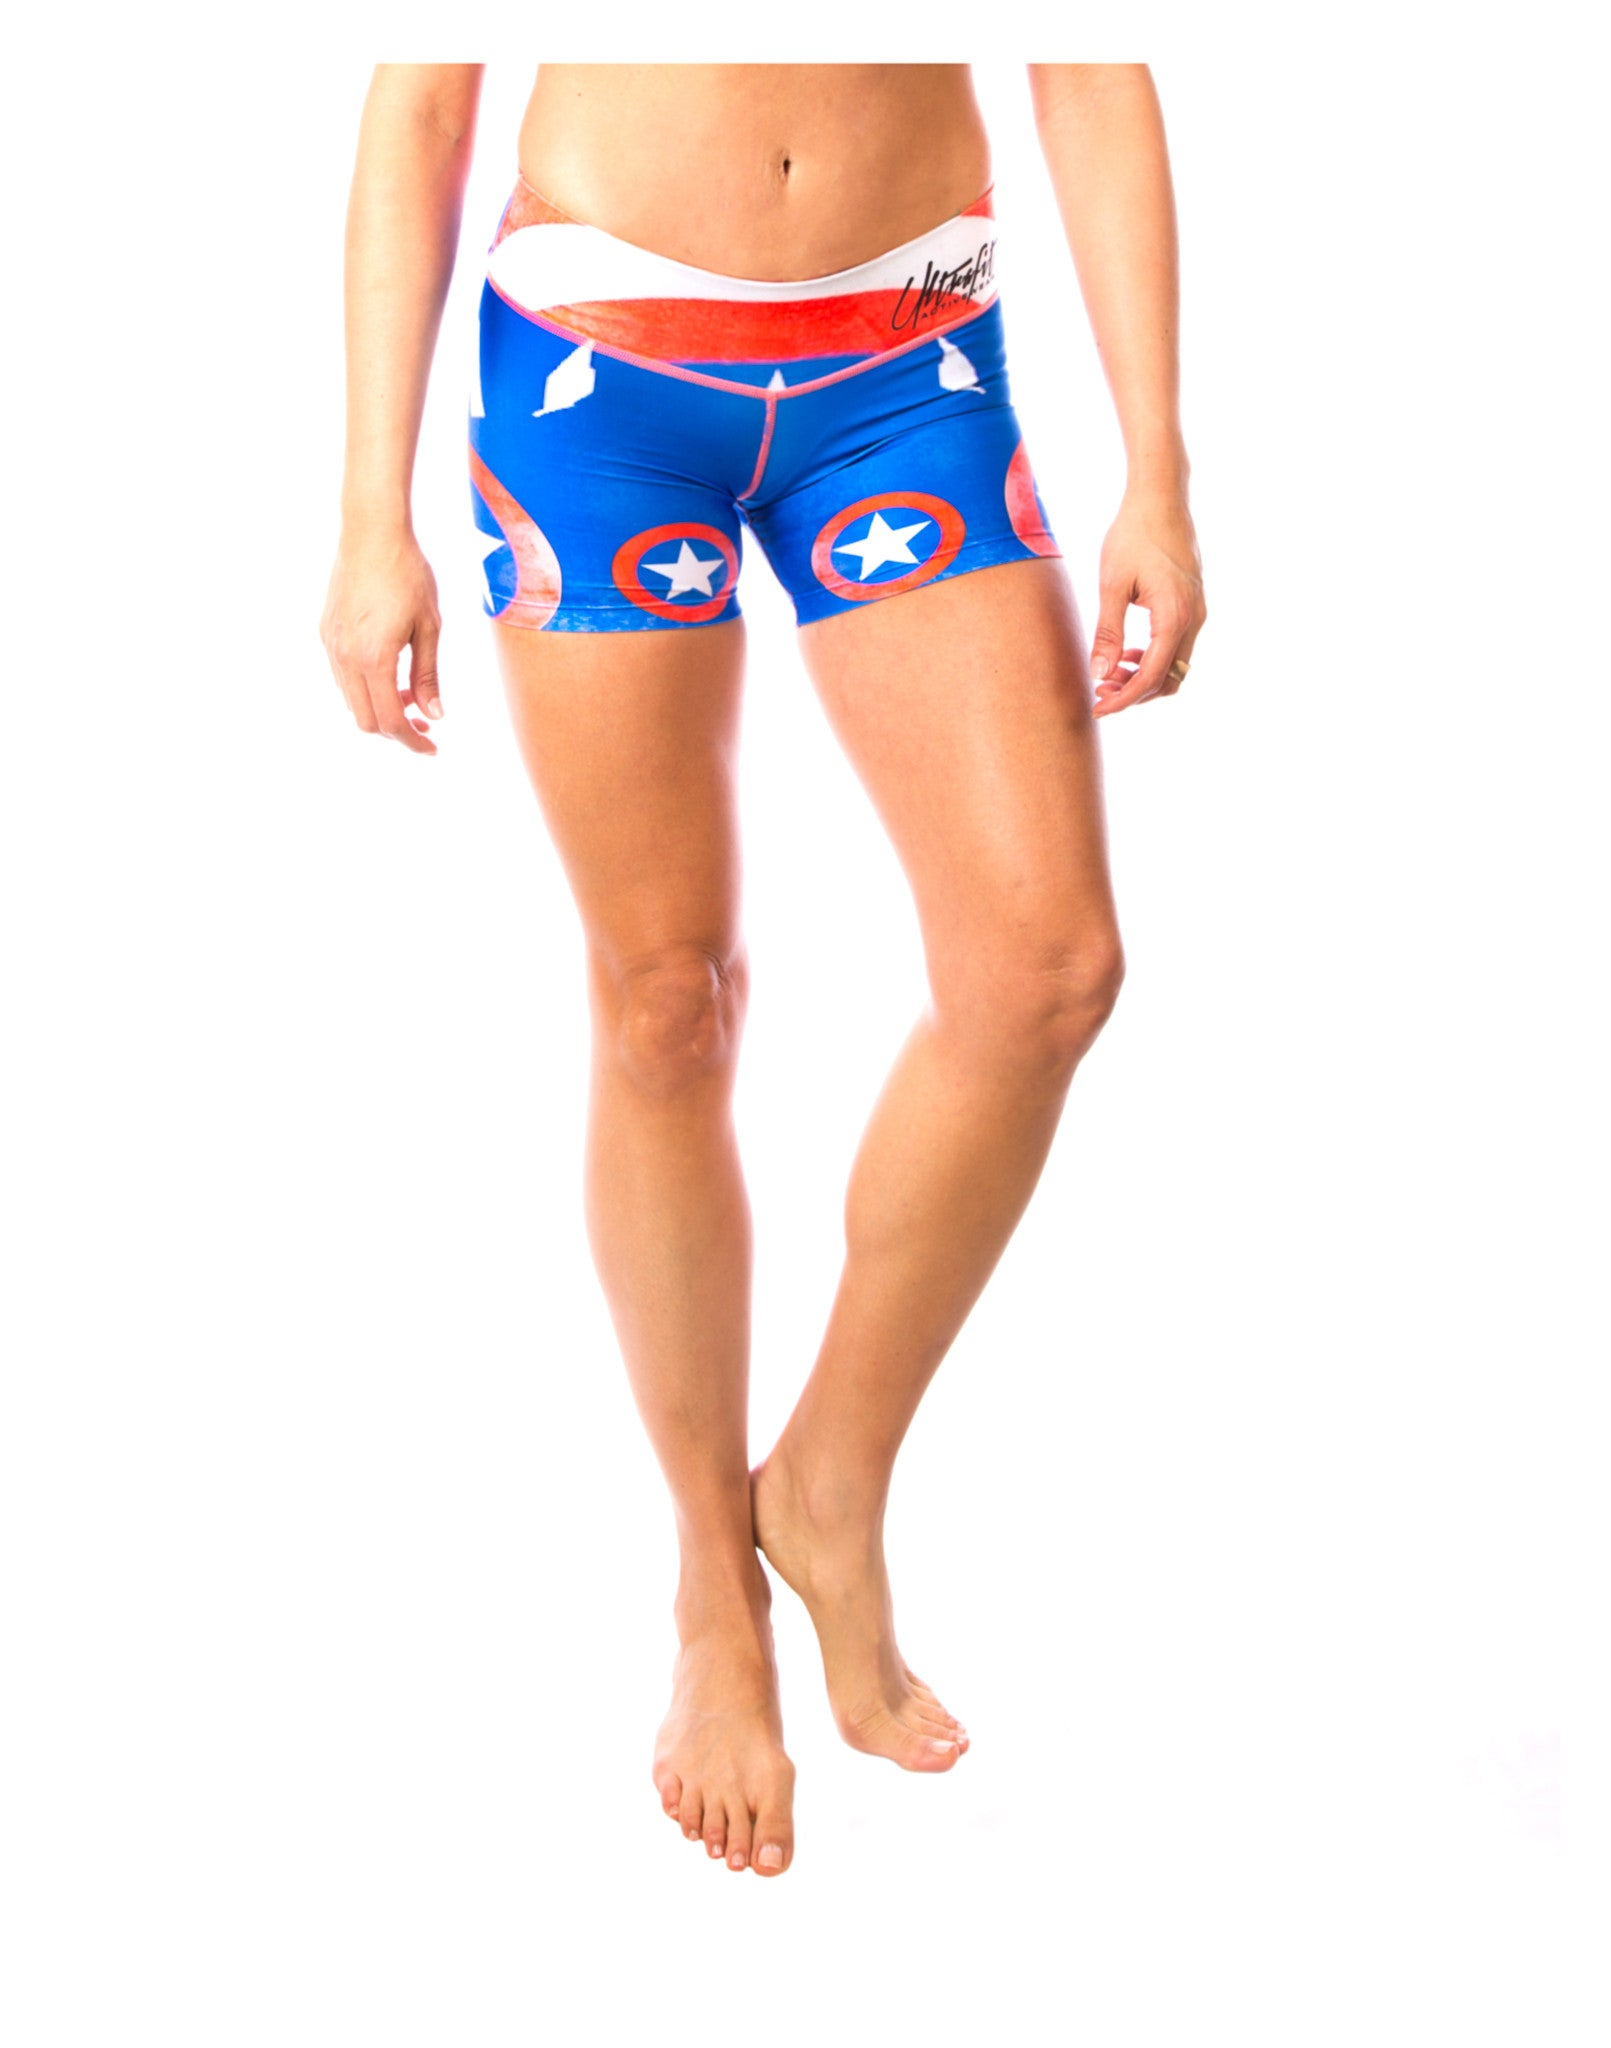 Super Hero Spandex America shorts - compression shorts for hot yoga by LavaLoka - I'm A Patriot Collection